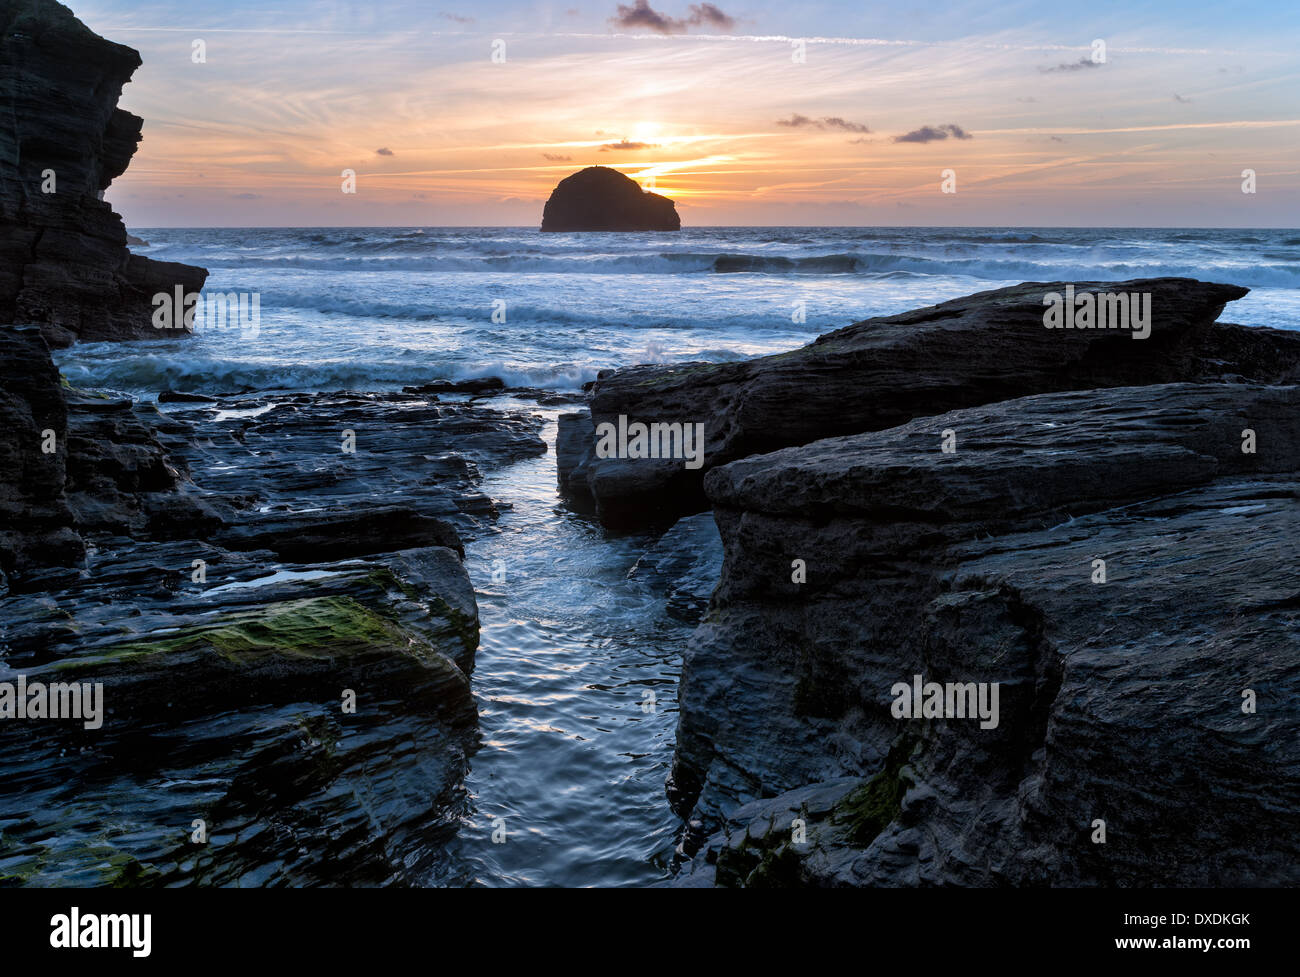 High tide at Trebarwith Strand beach on the north coast of Cornwall - Stock Image